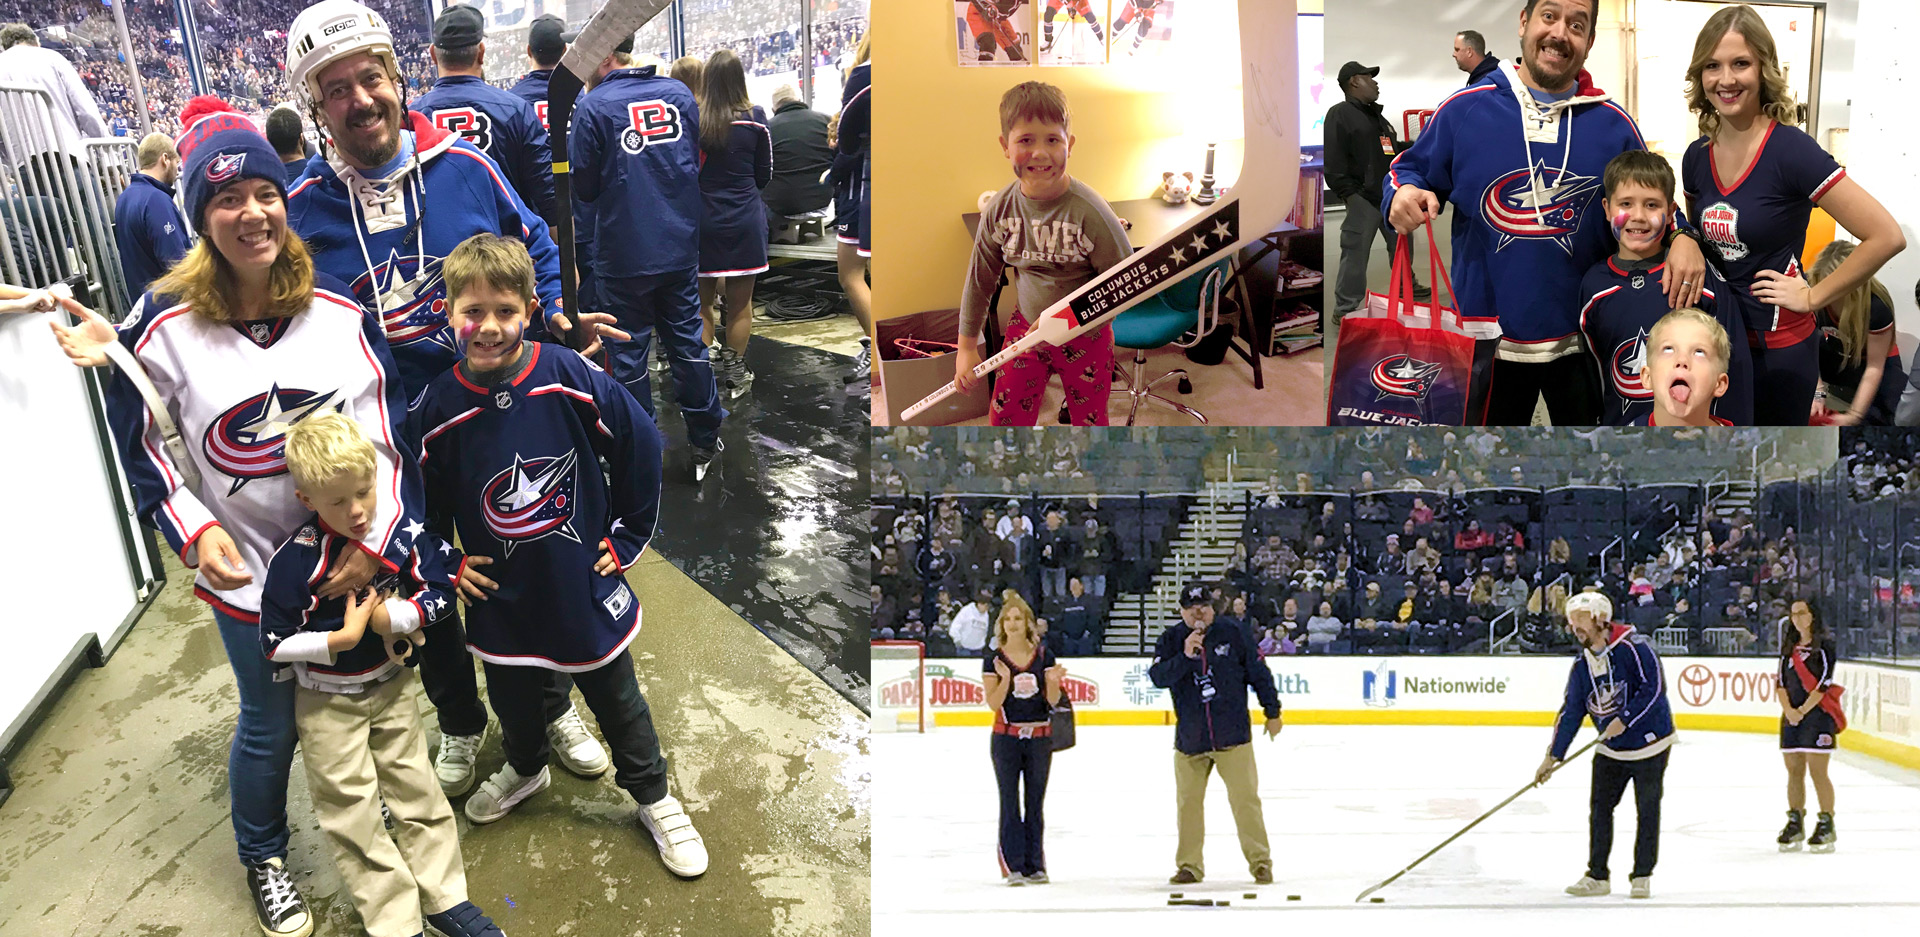 Clockwise from left: The Mowders hanging at ice level before the second intermission; Miles posing with his signed Sergei Bobrovsky stick at home; The boys and I with our prizes and awesome staff member; On the ice at Nationwide getting ready to shoot for the TomCat Triple Shot.